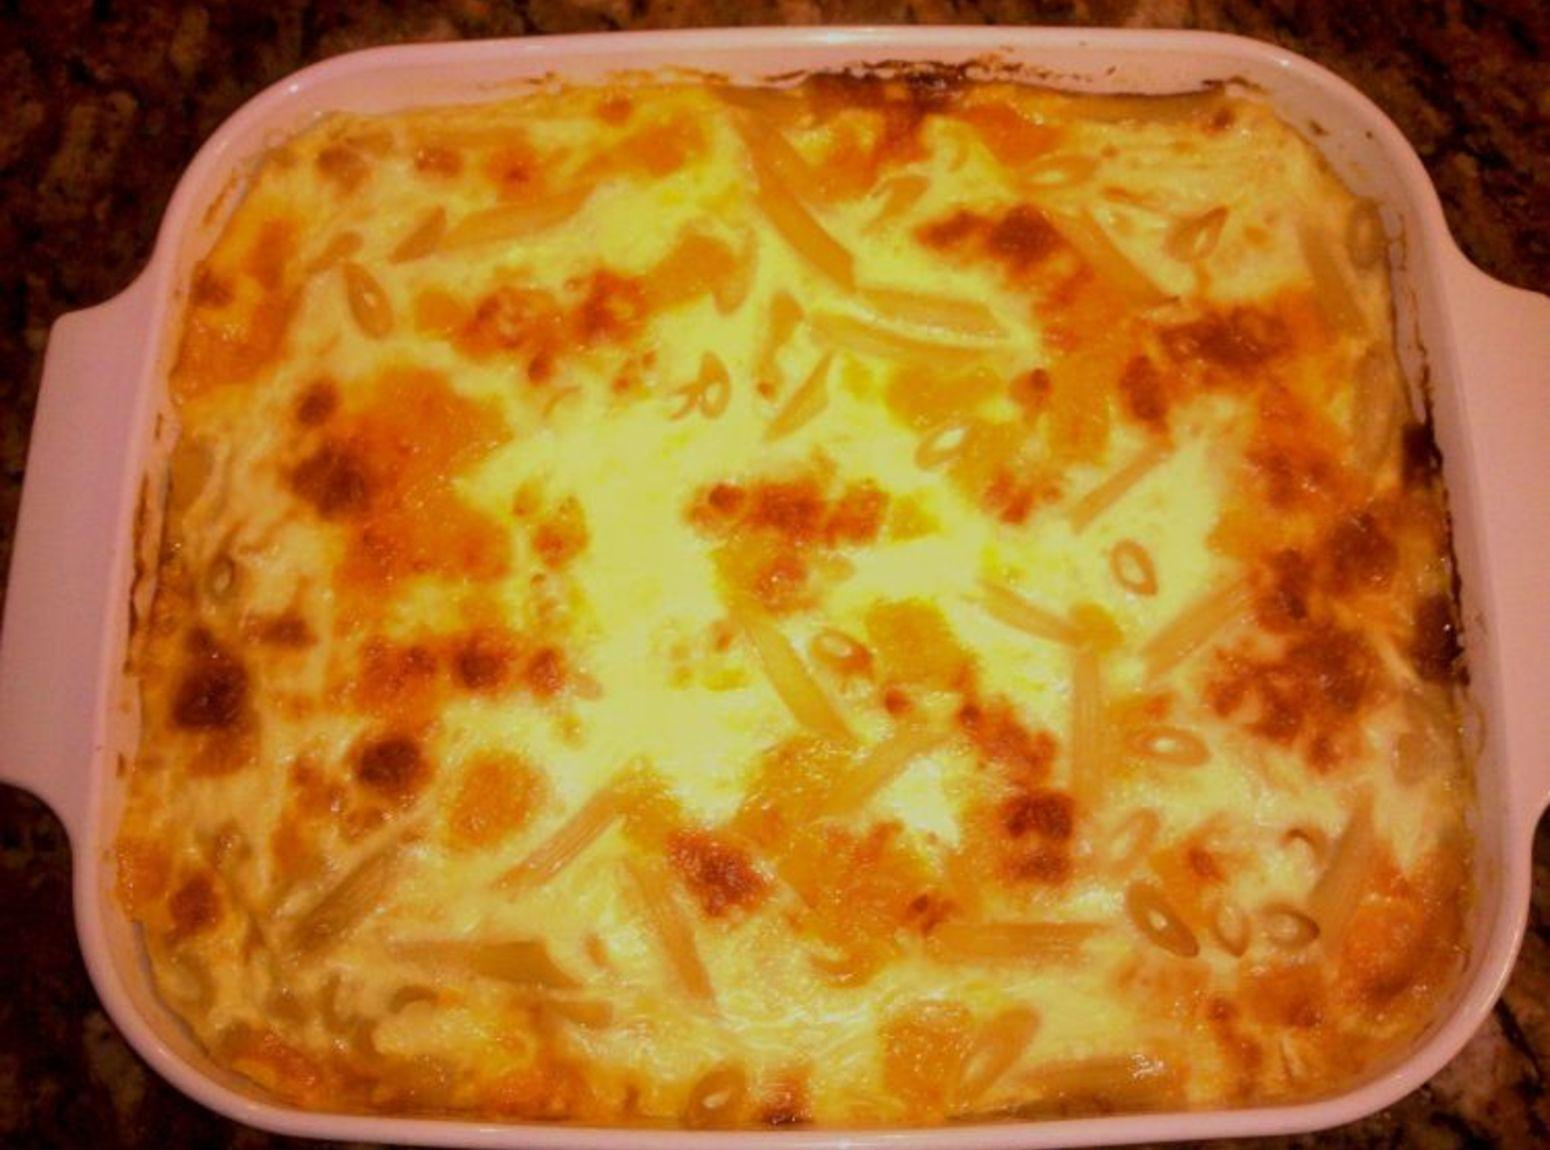 Jane's Baked Macaroni and Cheese Recipe